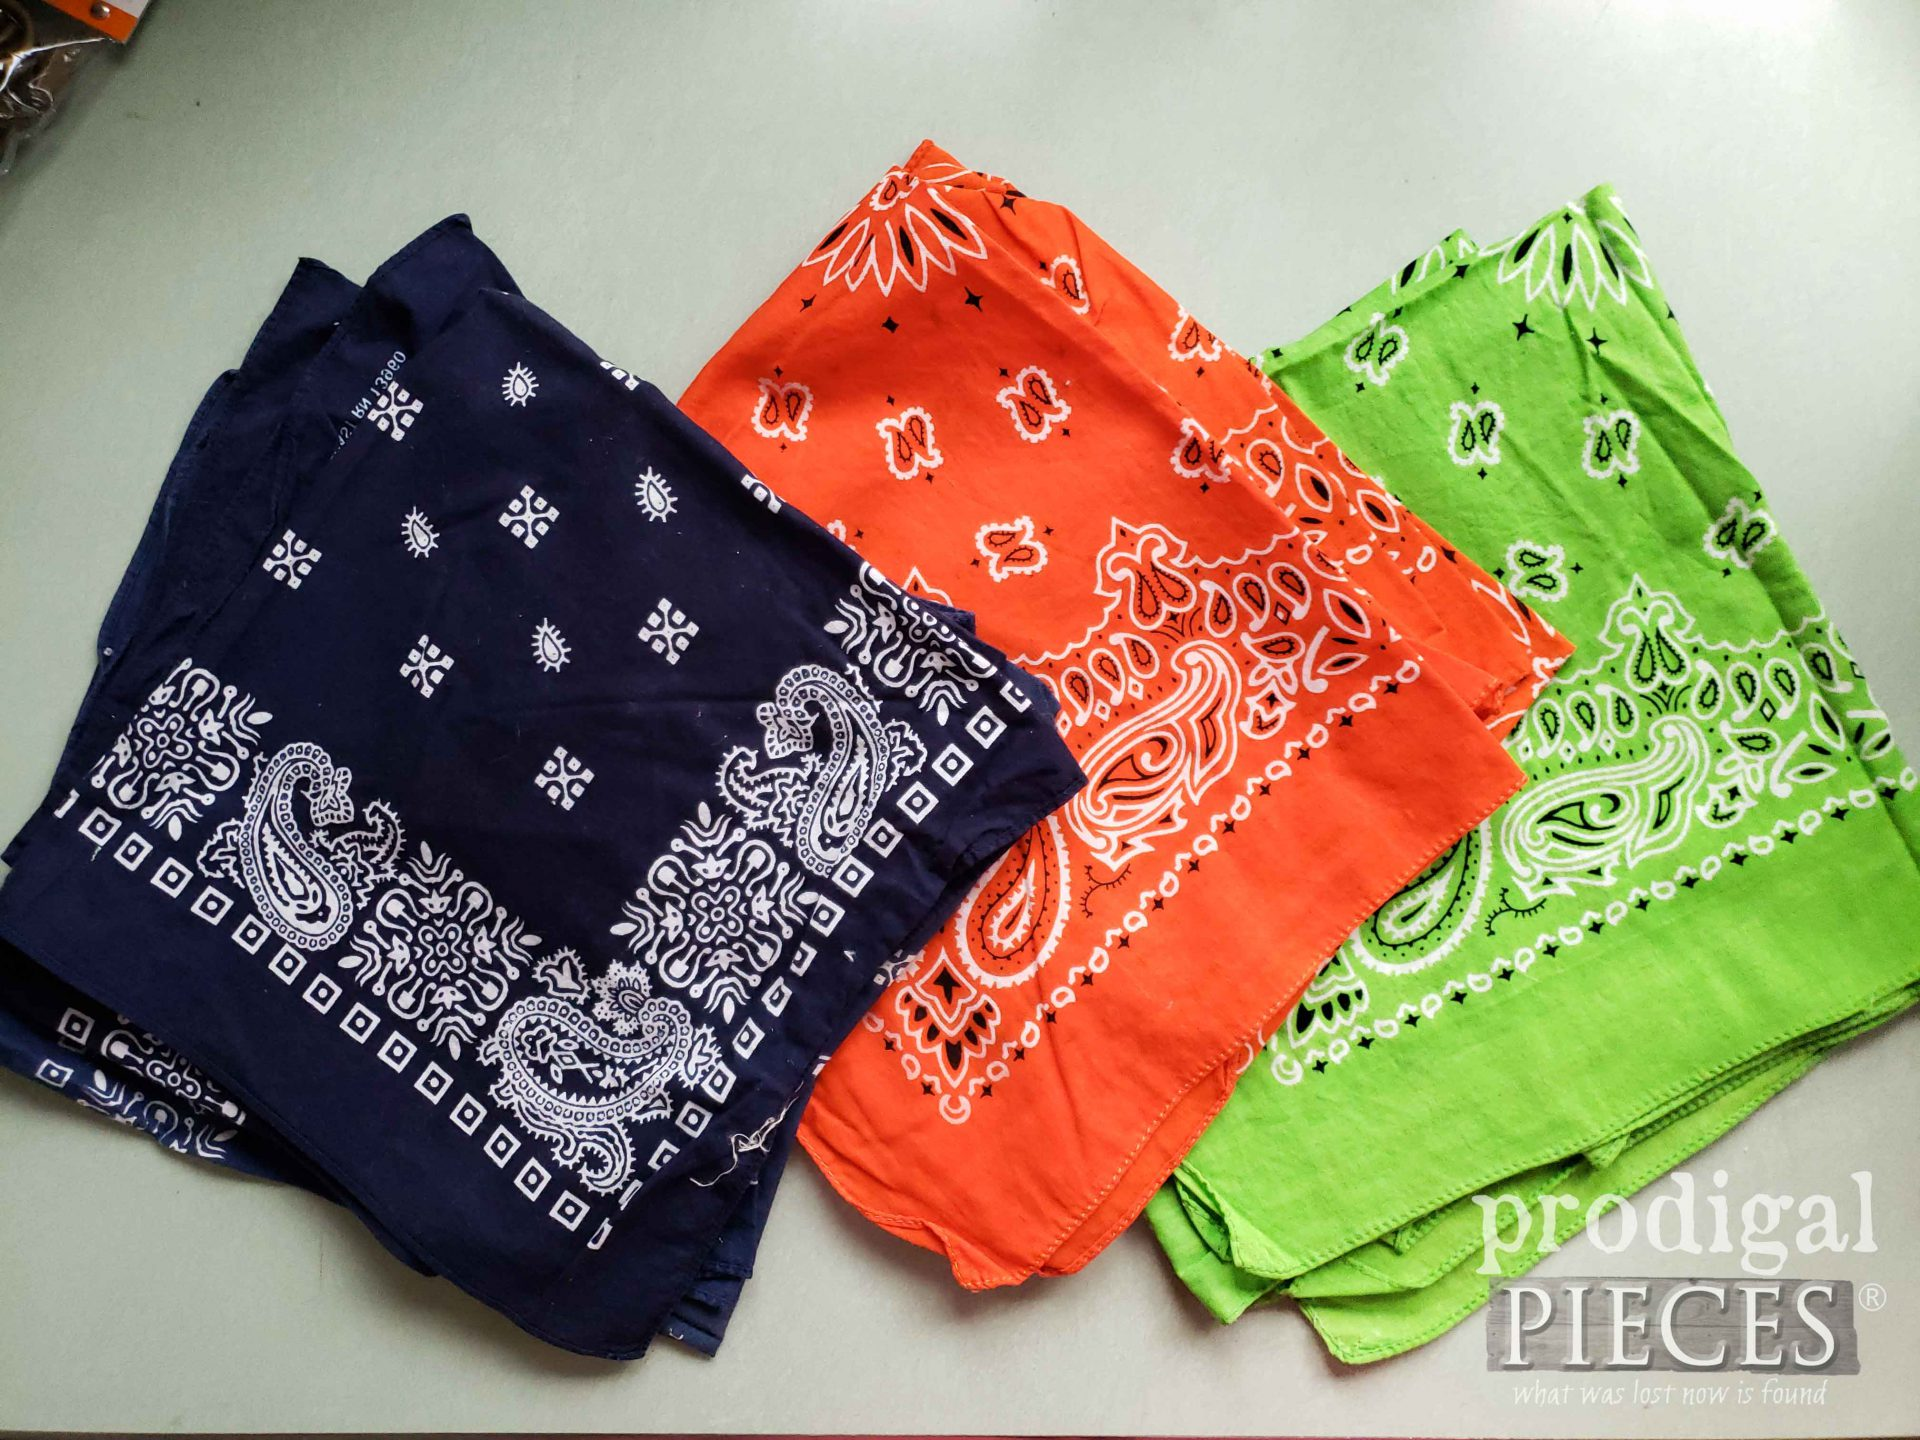 Thrifted Bandana's Before Upcycled to Drawstring Bag | prodigalpieces.com